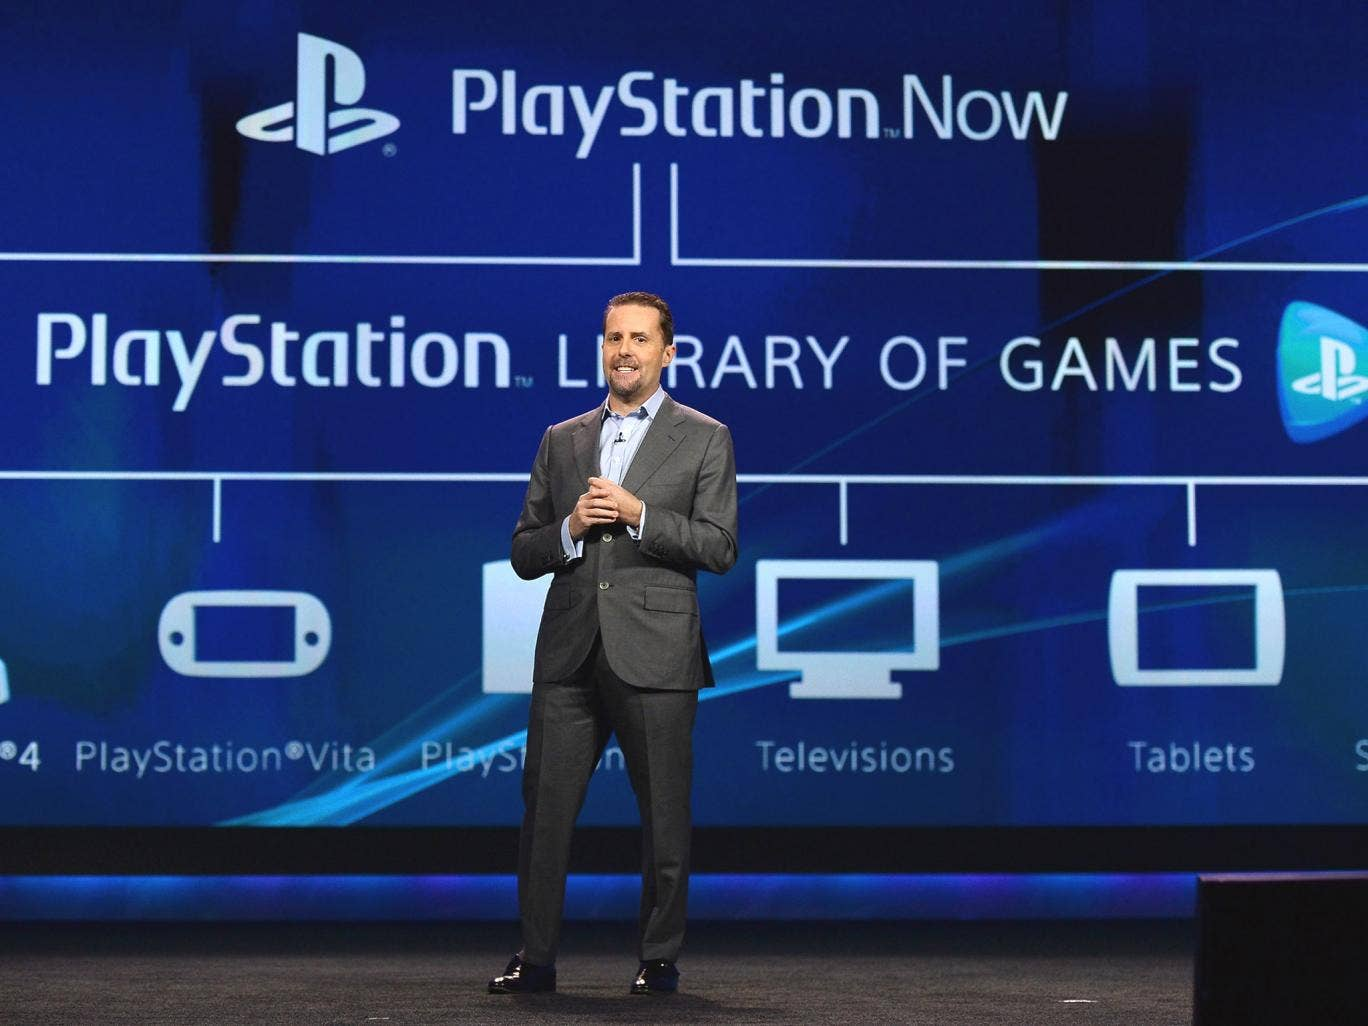 Sony Computer Entertainment President and Group CEO Andrew House, executive in charge of Sony Network Entertainment, introduces PlayStation Now